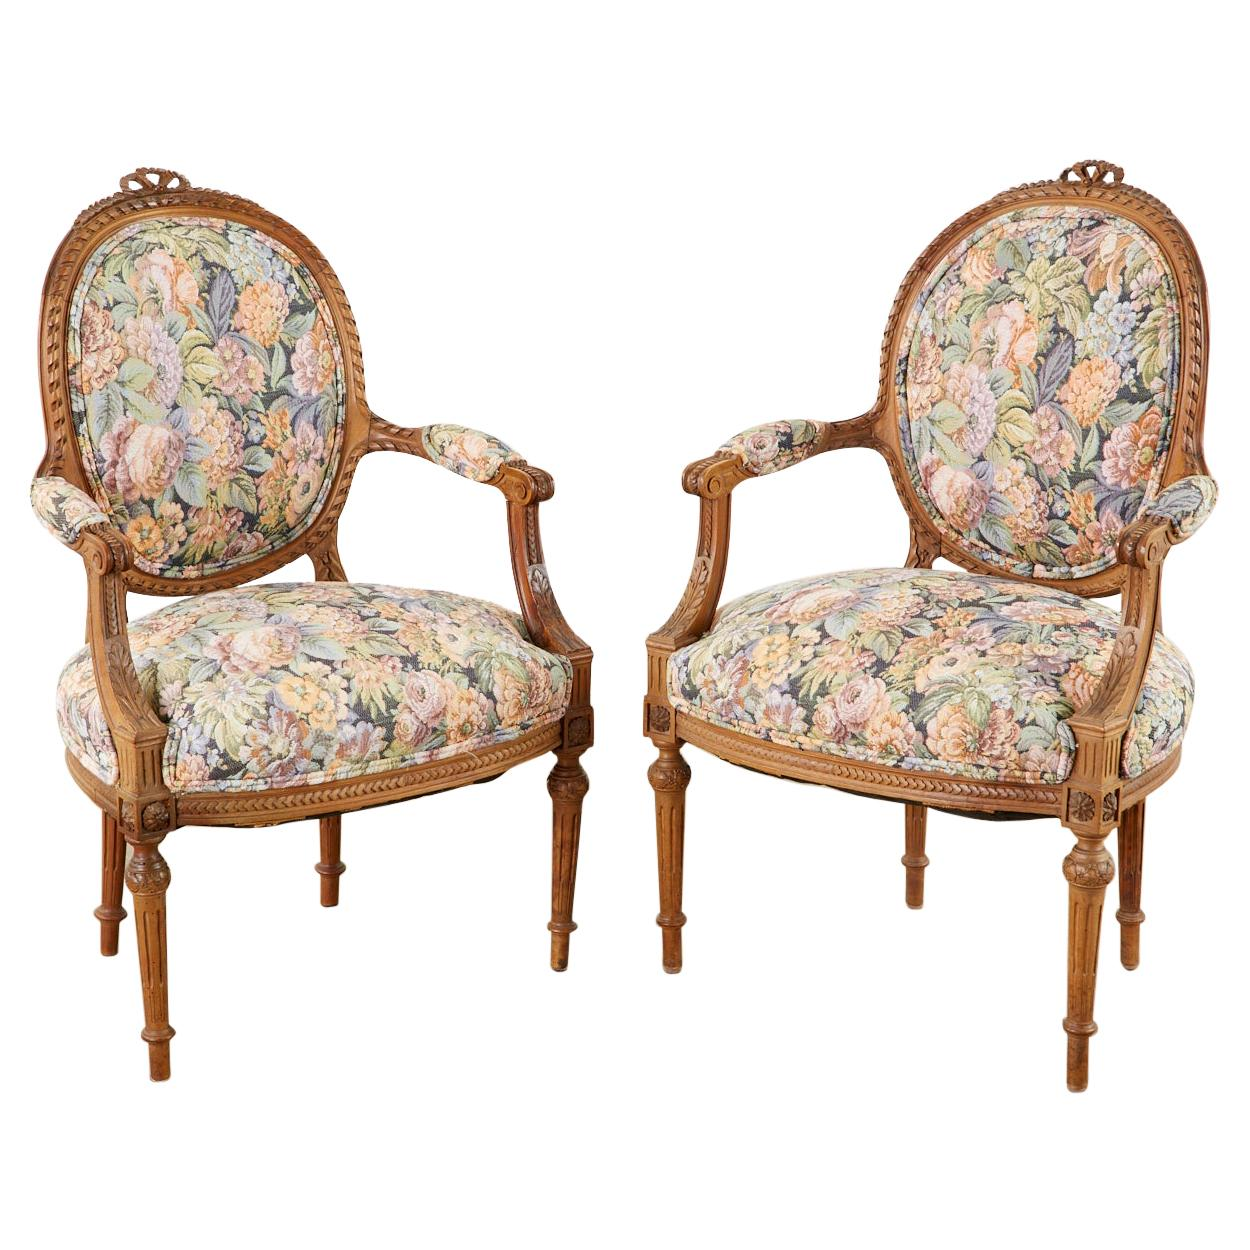 Pair of French Louis XVI Style Carved Fauteuil Armchairs